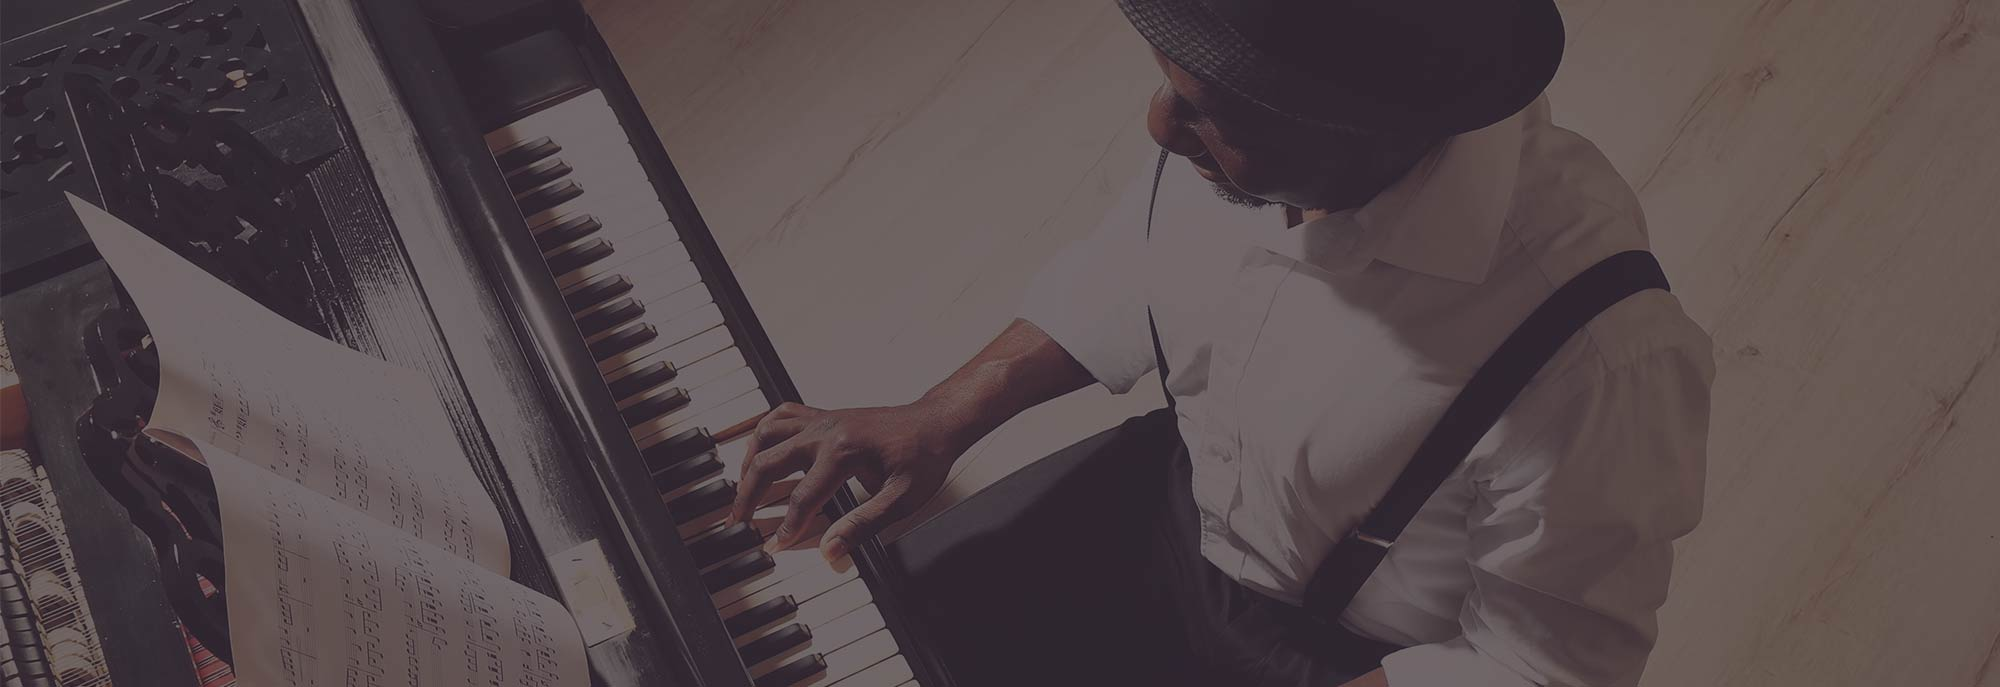 Man in suspenders playing piano